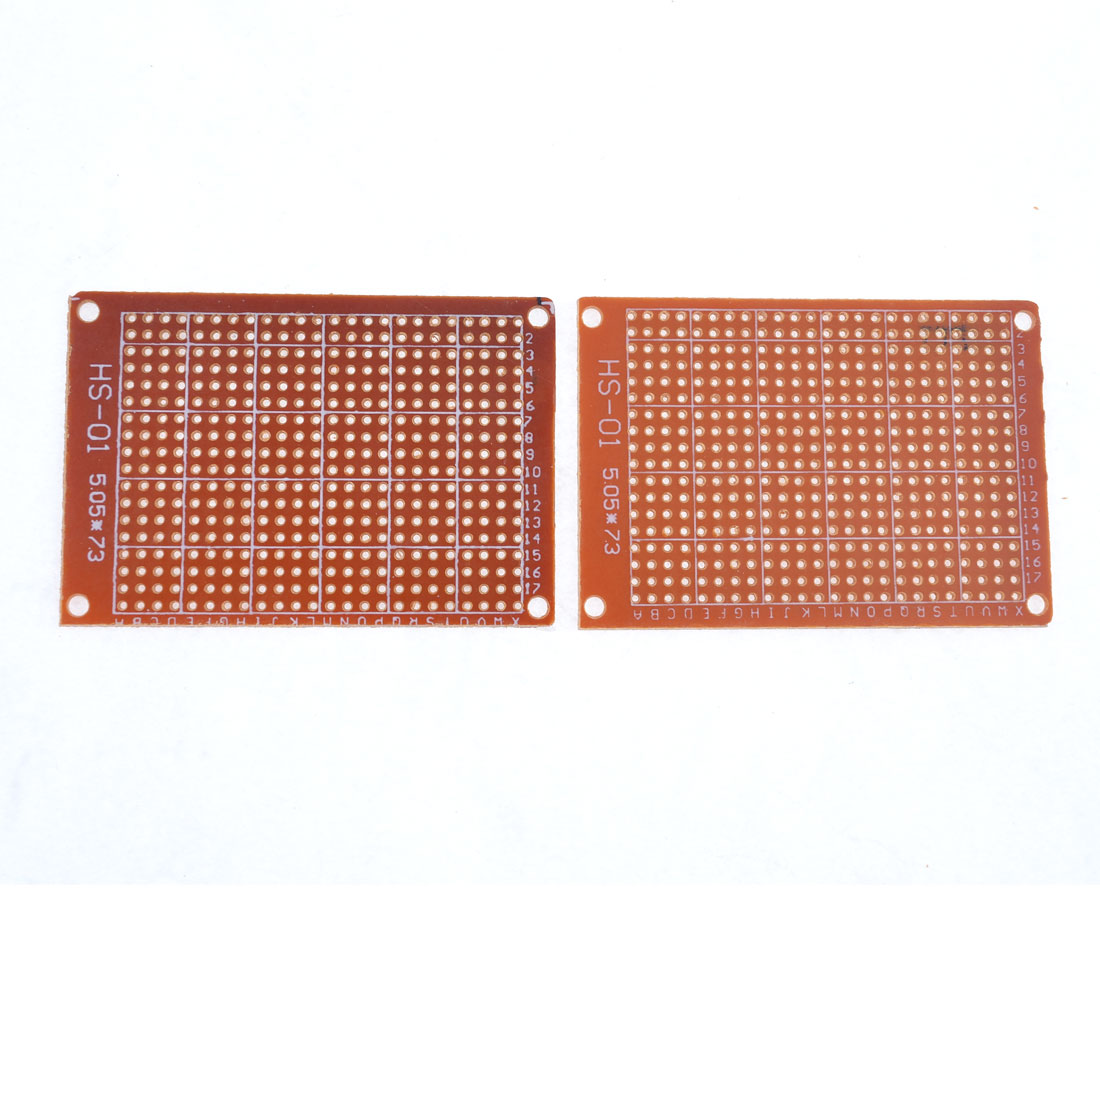 2pcs Prototype Single Side Copper Universal PCB Circuit Board 7.3x5cm